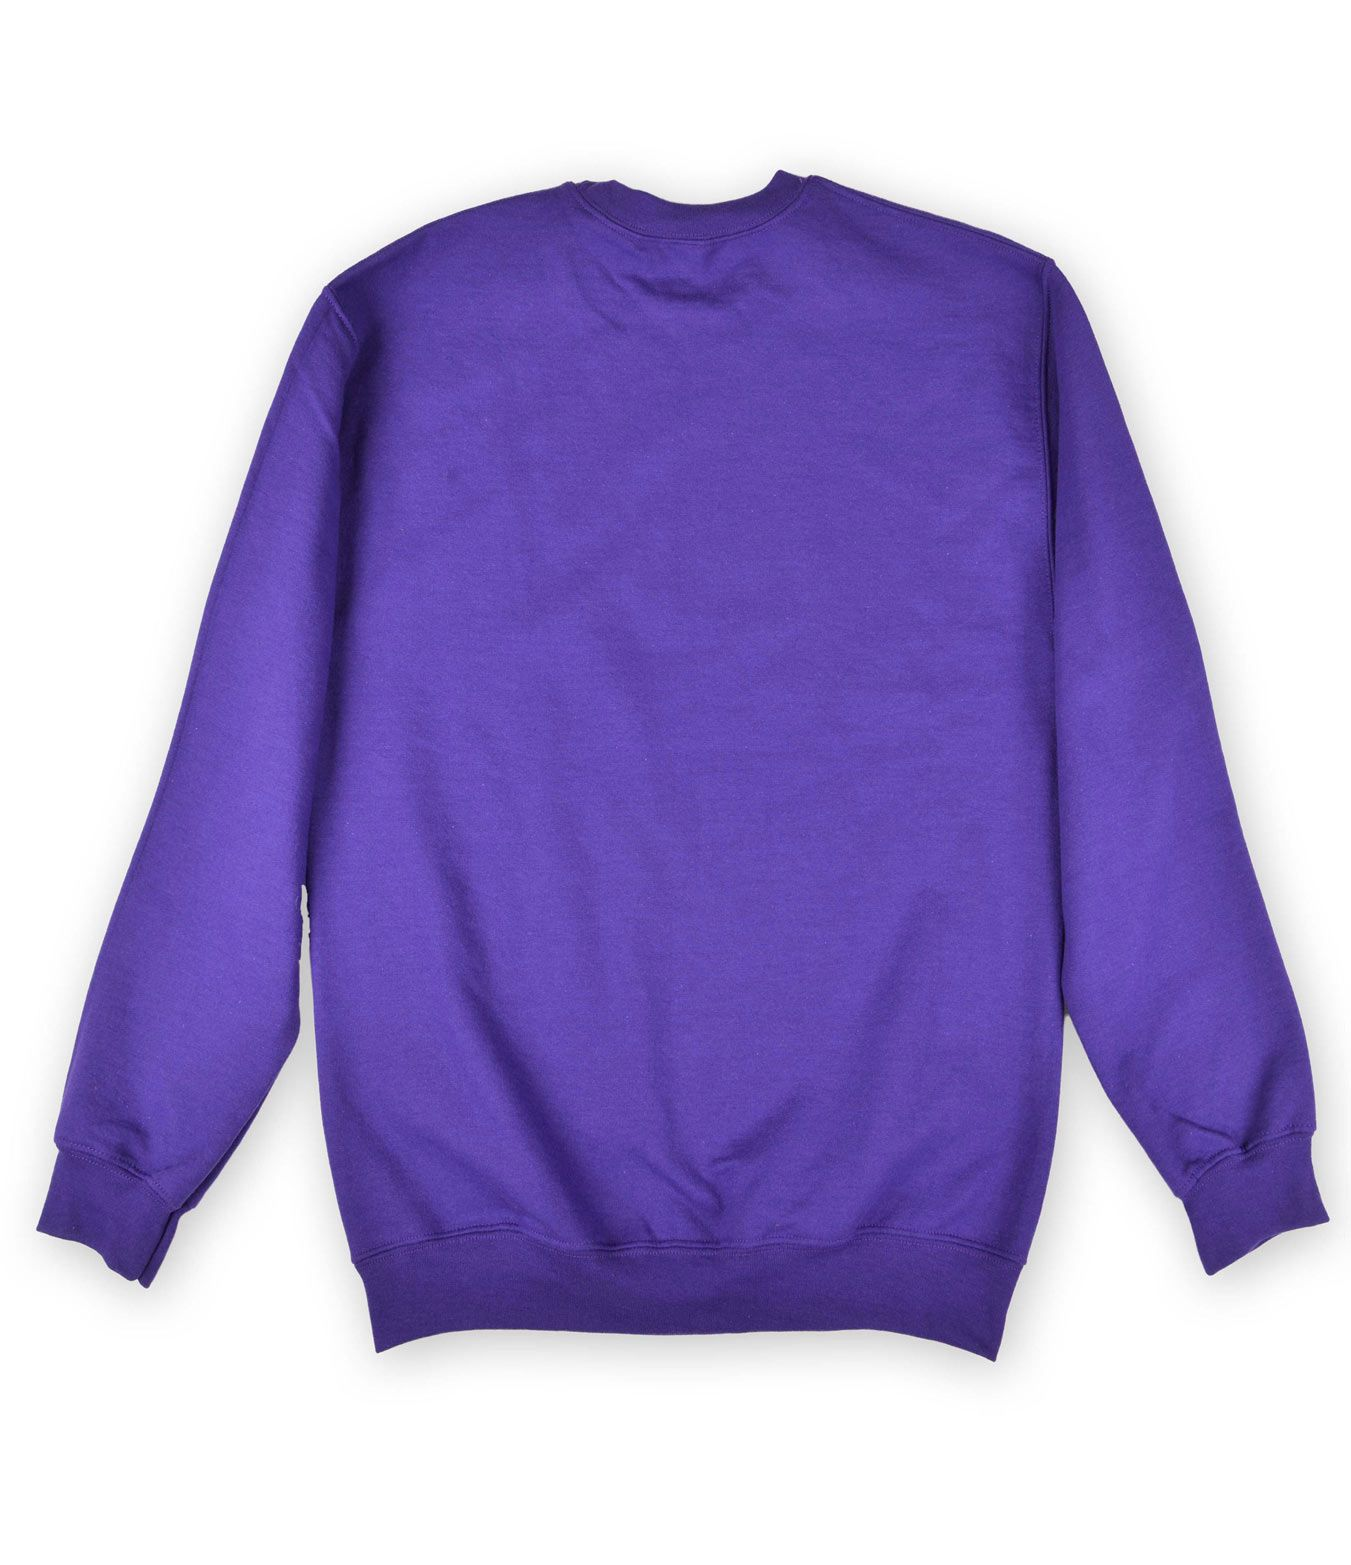 Poloshow sweater purple 2